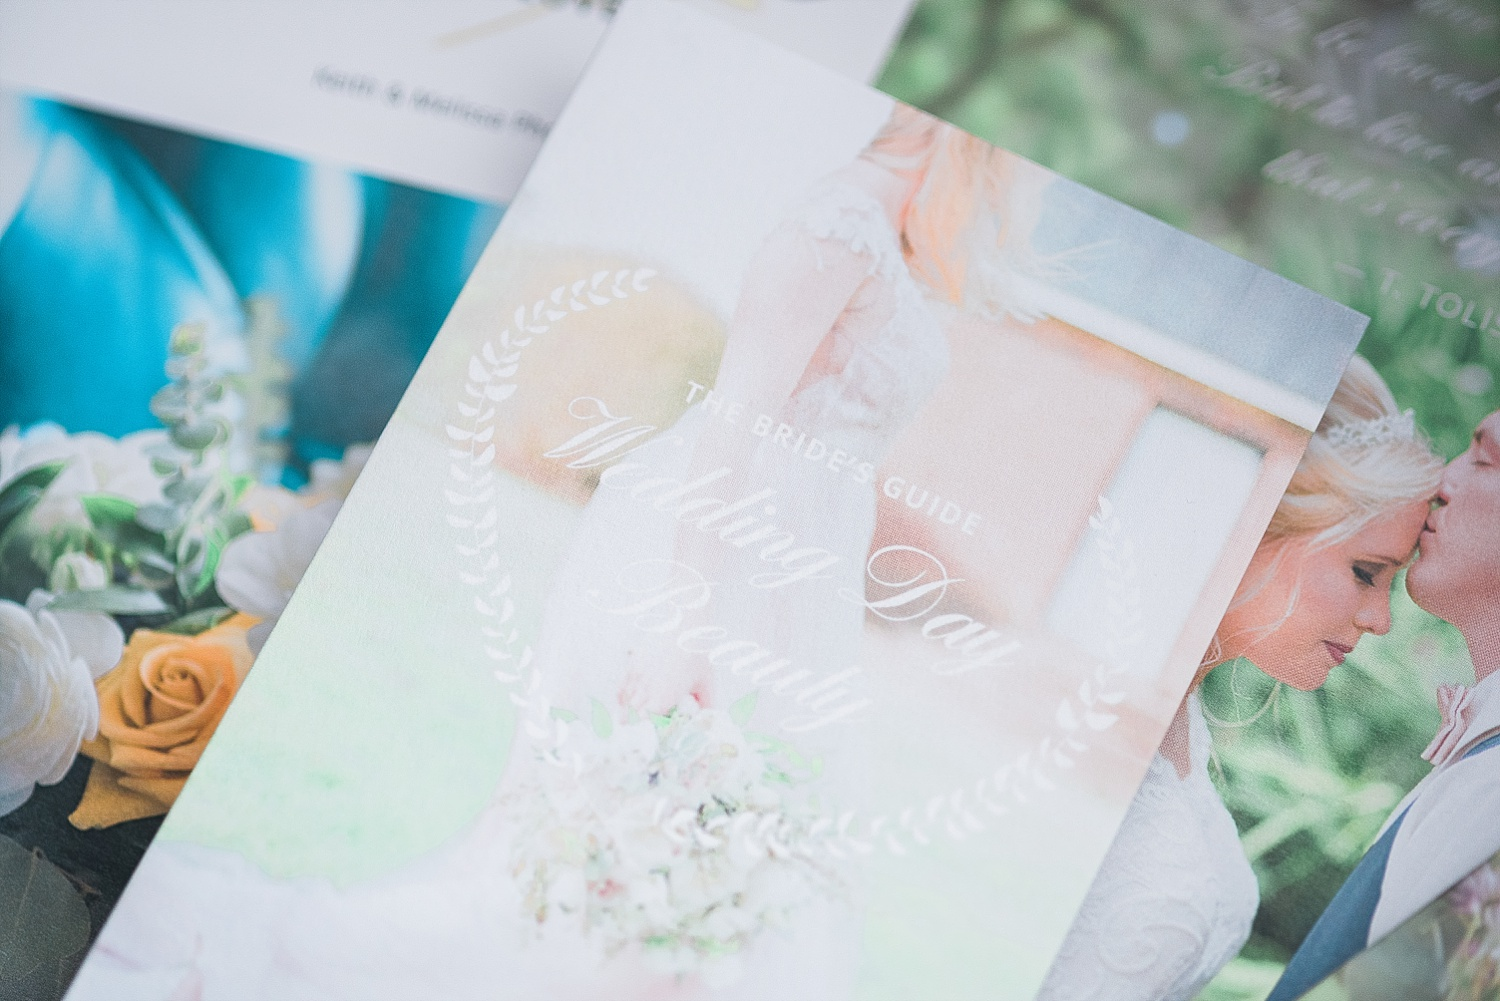 Each consultation client receives our welcome packet full of wedding day tips!